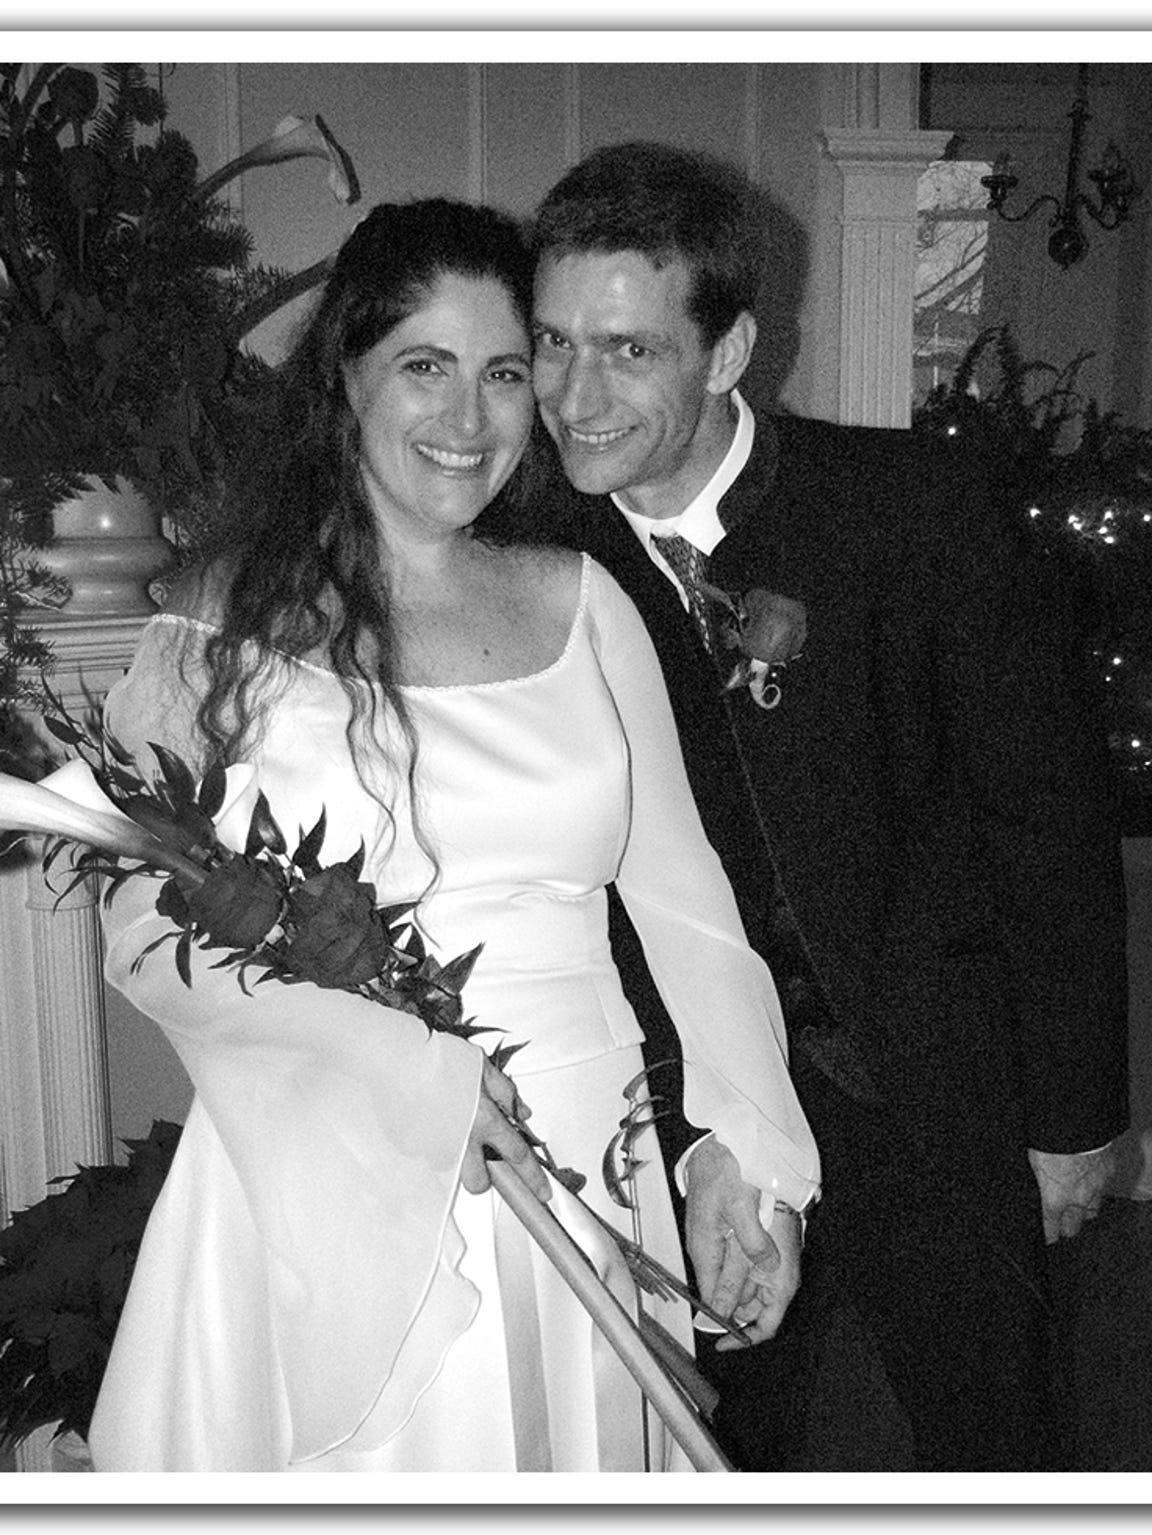 Joe Neyer and Laurie Traveline marry at the Oxford